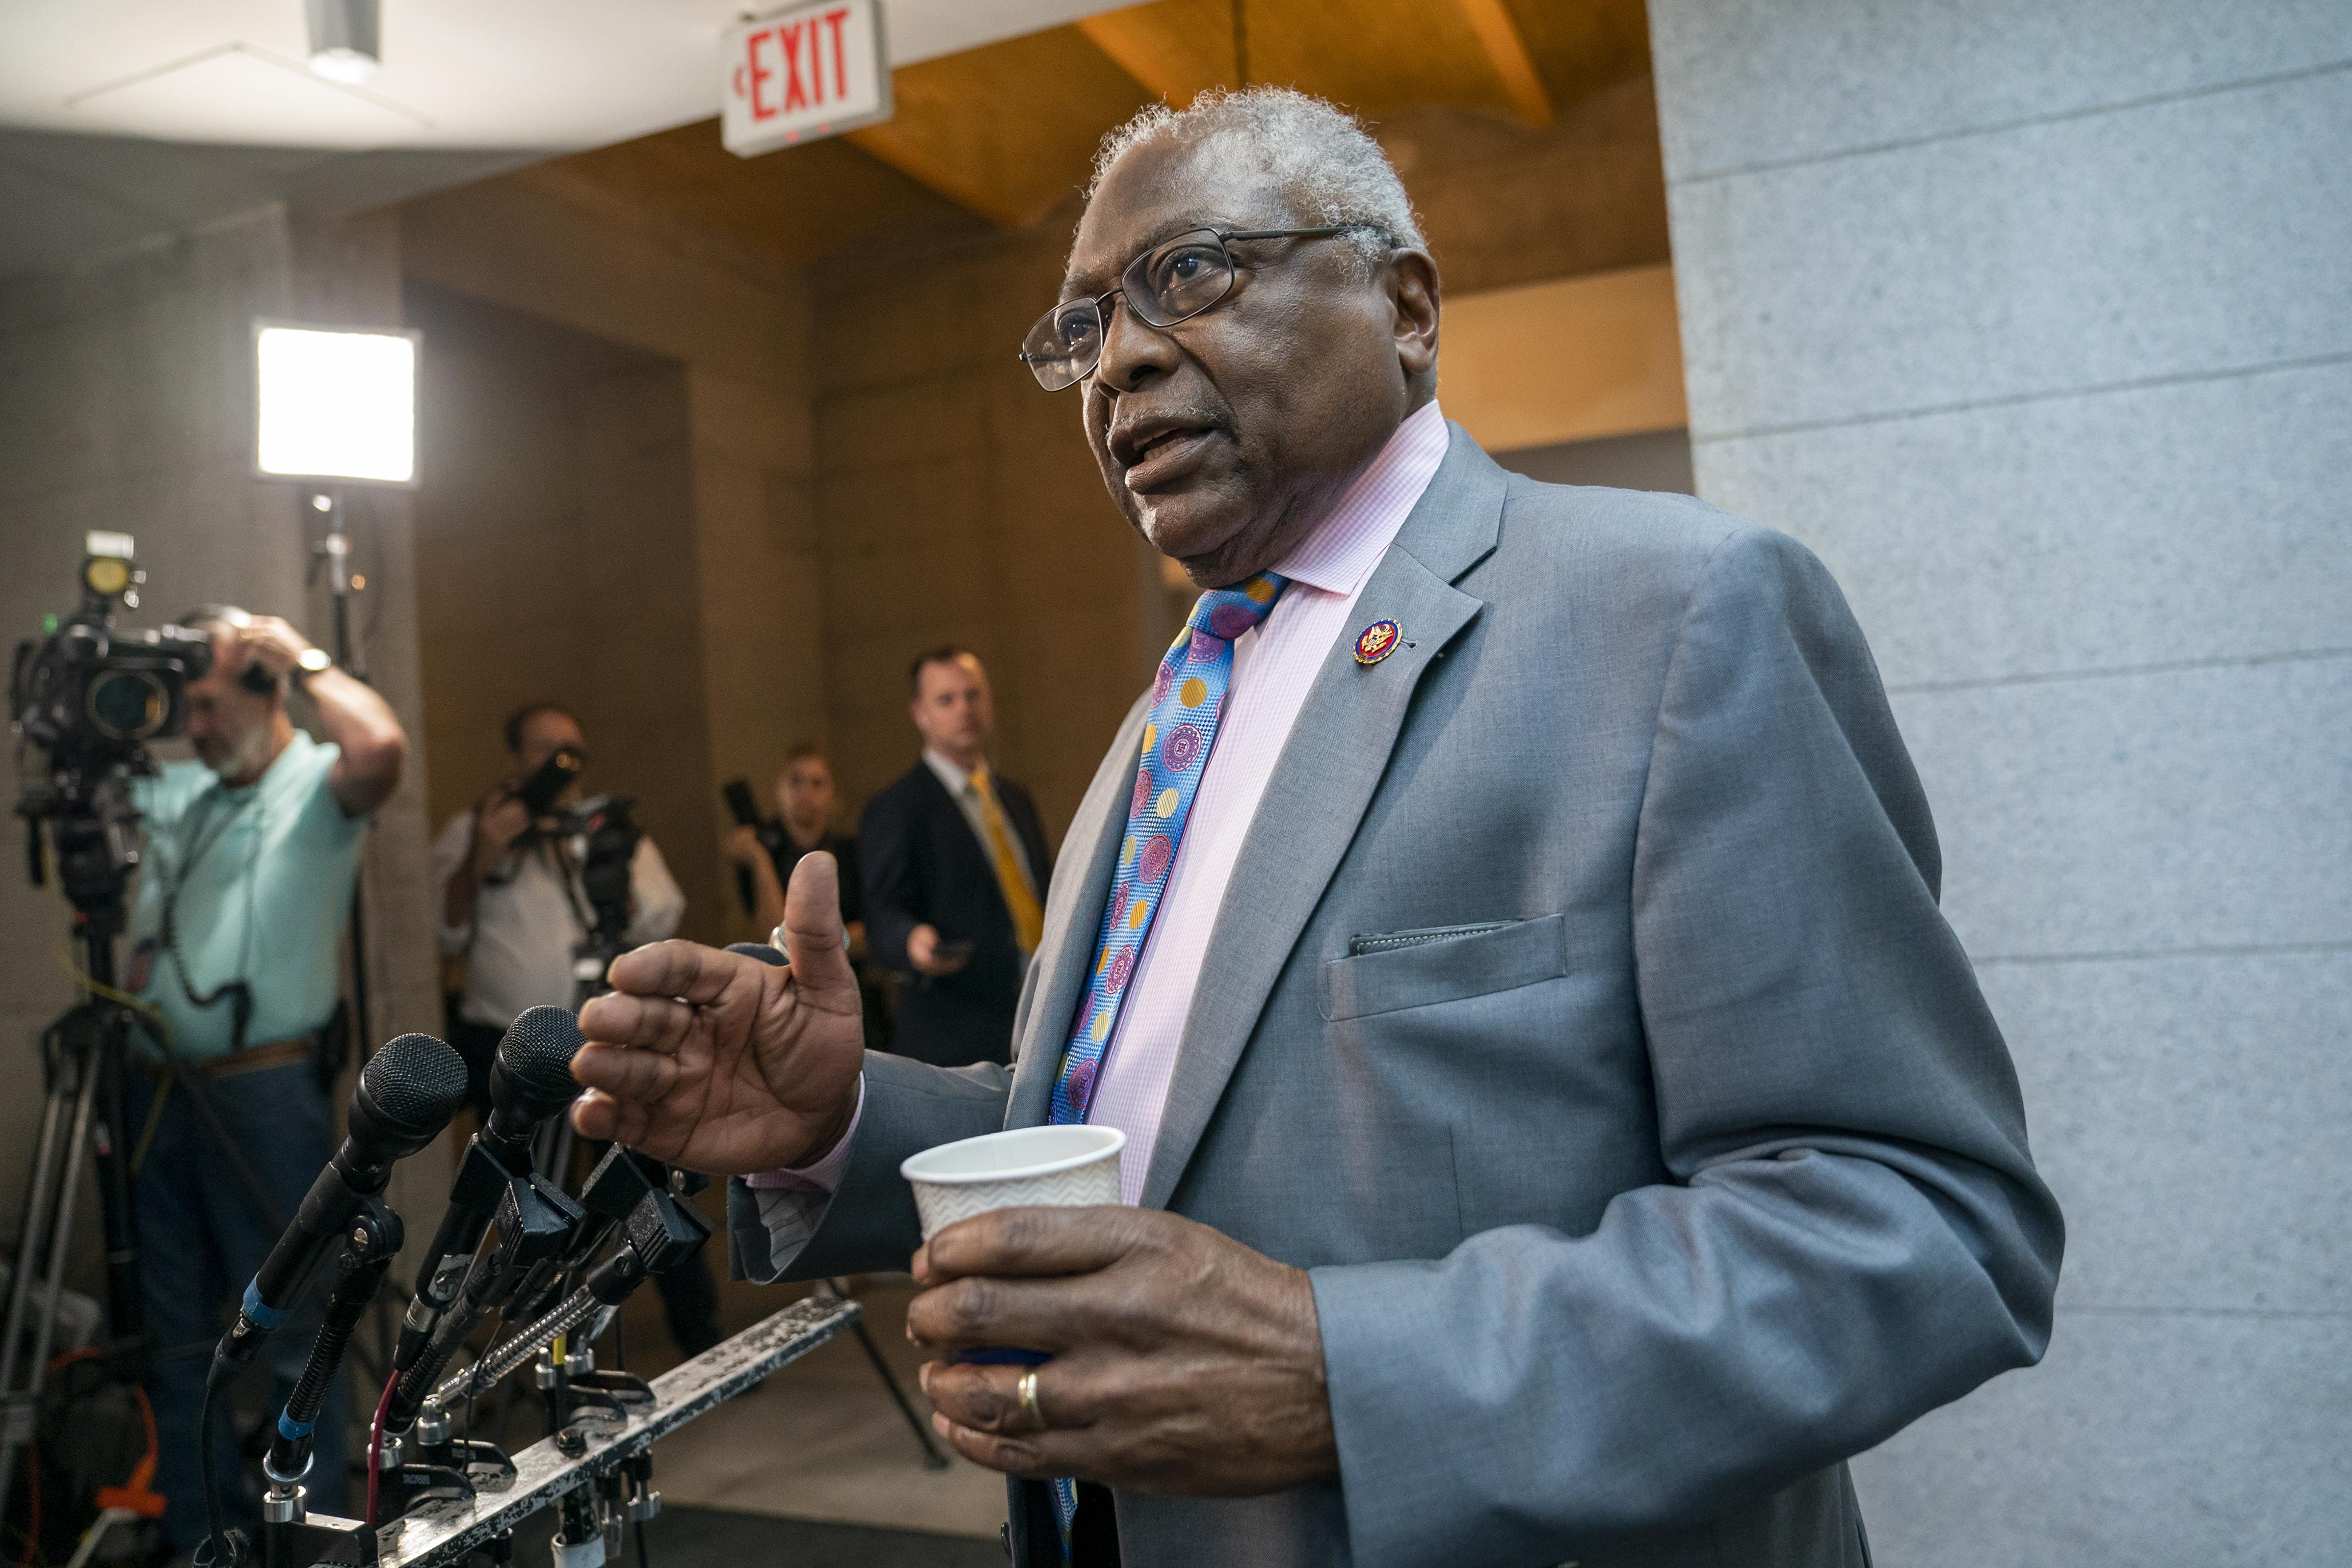 James Clyburn says he hopes impeachment inquiry can wrap up by Christm